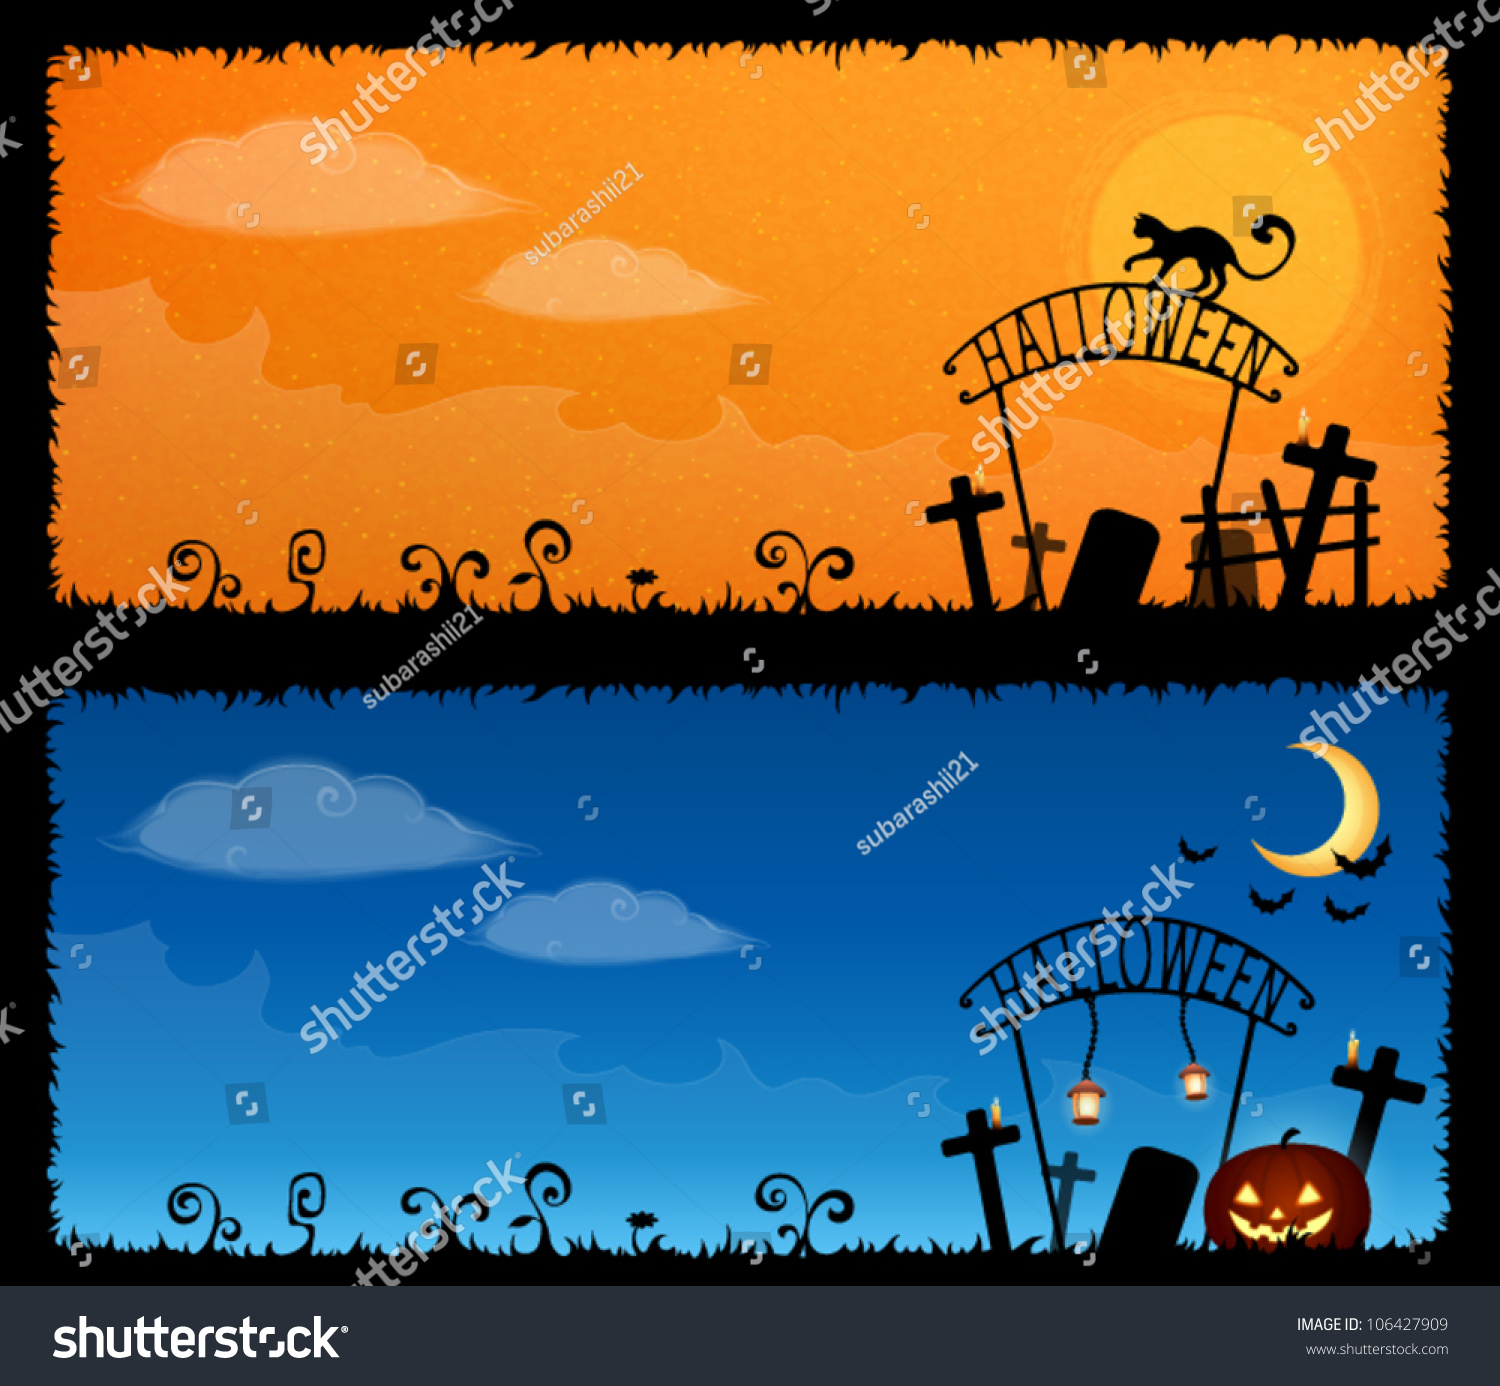 cute halloween theme banners with a spooky graveyard stock vector cute halloween theme banners with a spooky graveyard stock vector - Windows 7 Halloween Theme